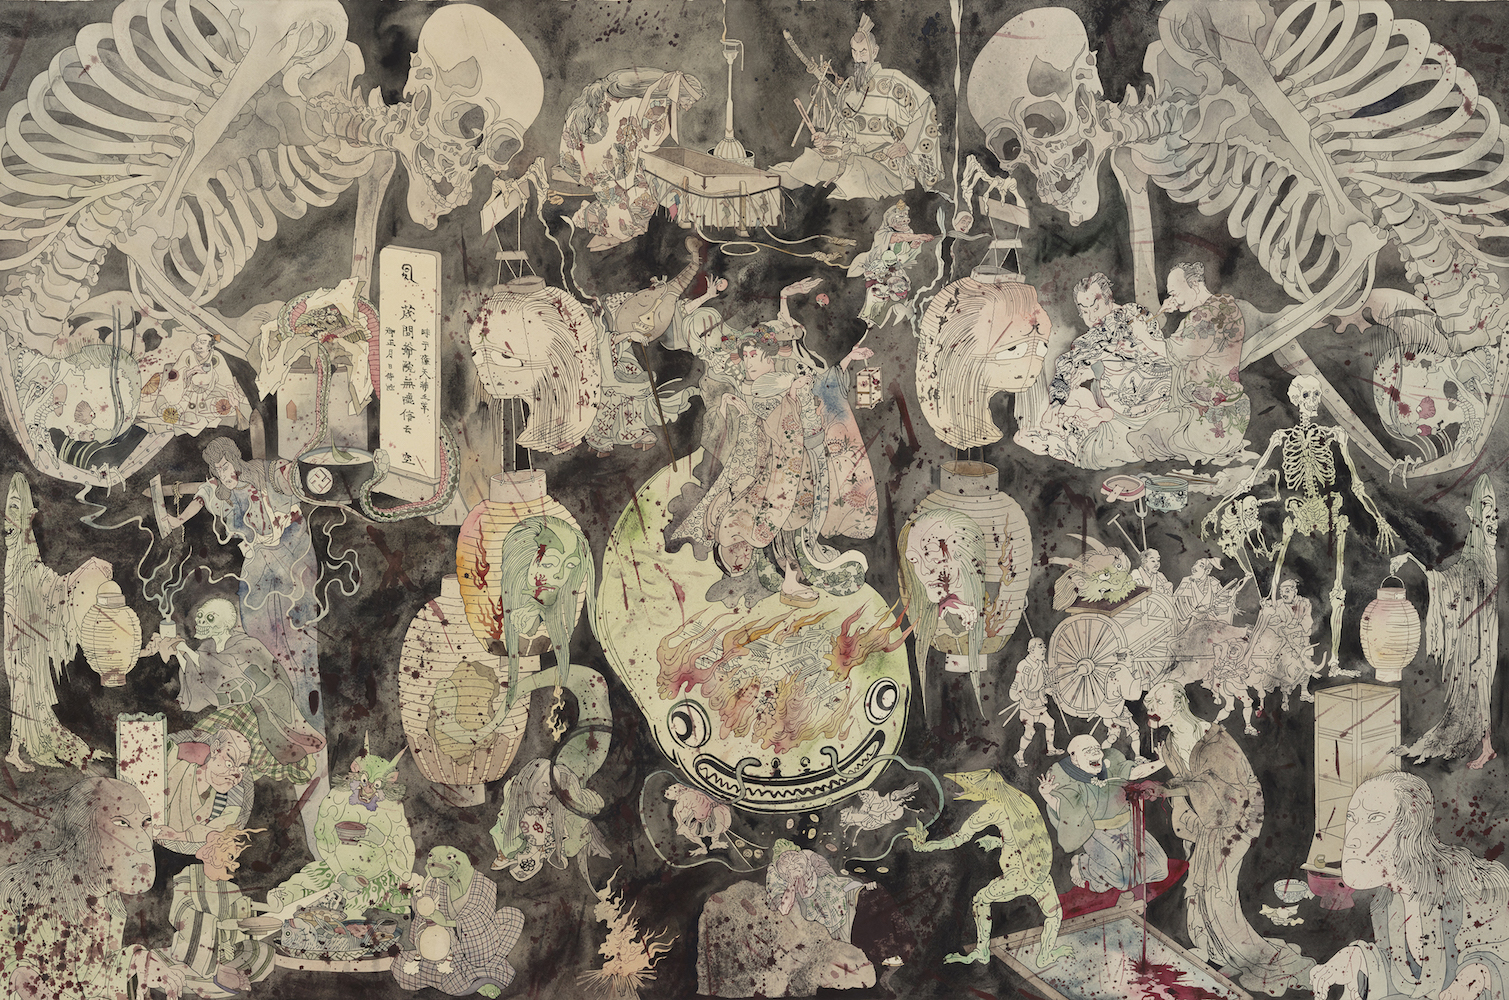 The Triumph of Death /Dödens triumf, 2018, watercolour on paper, black lacquered frame, museum glass, 115 x 166 cm